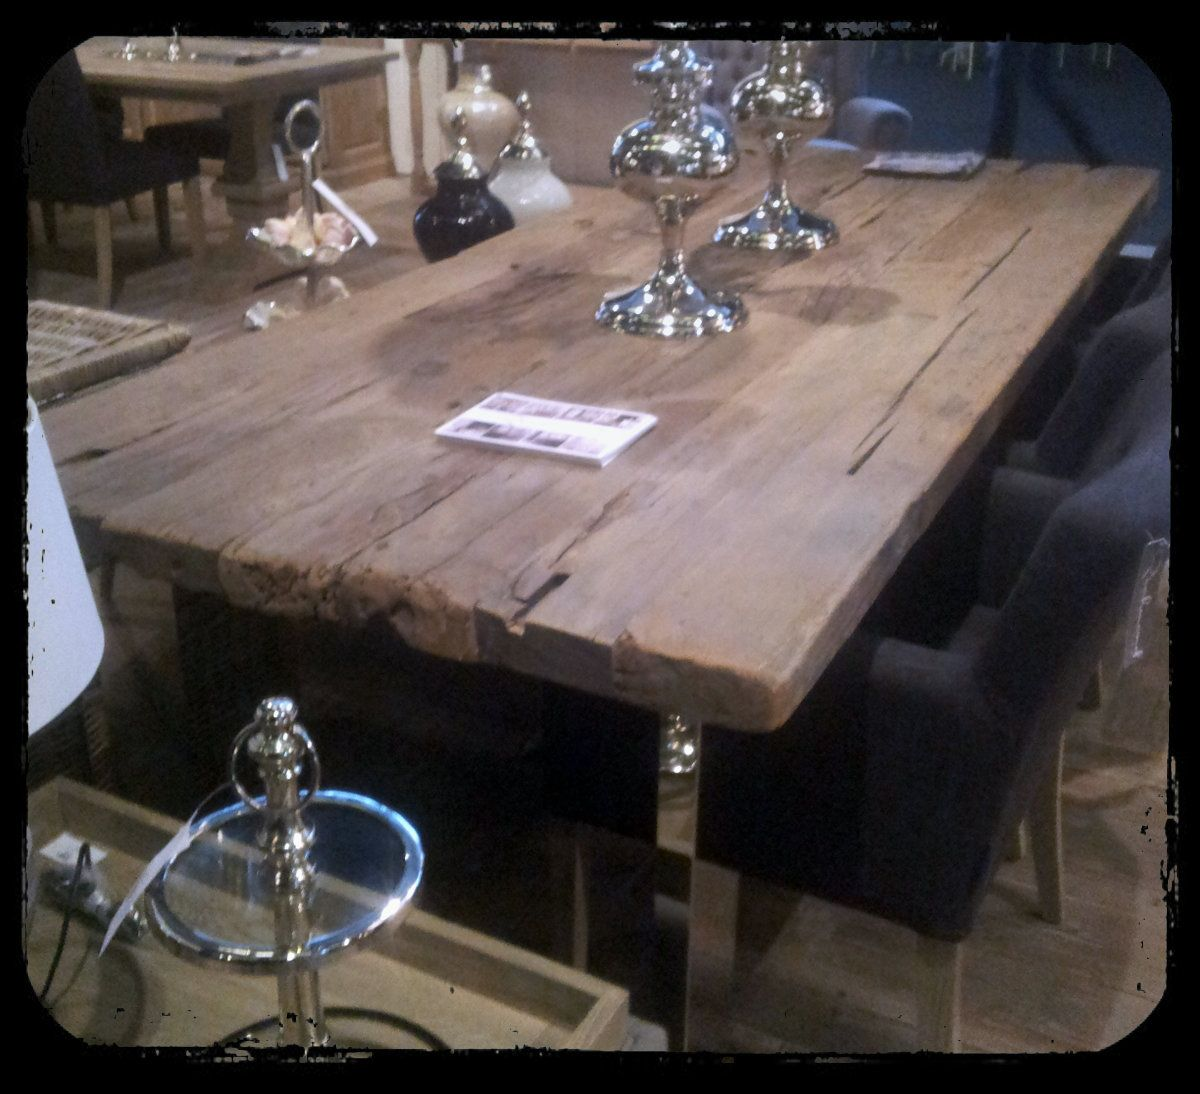 base hierro rustica para mesa comedor  Buscar con Google  muebles  Pinterest  Scandinavian Lofts and Decoration